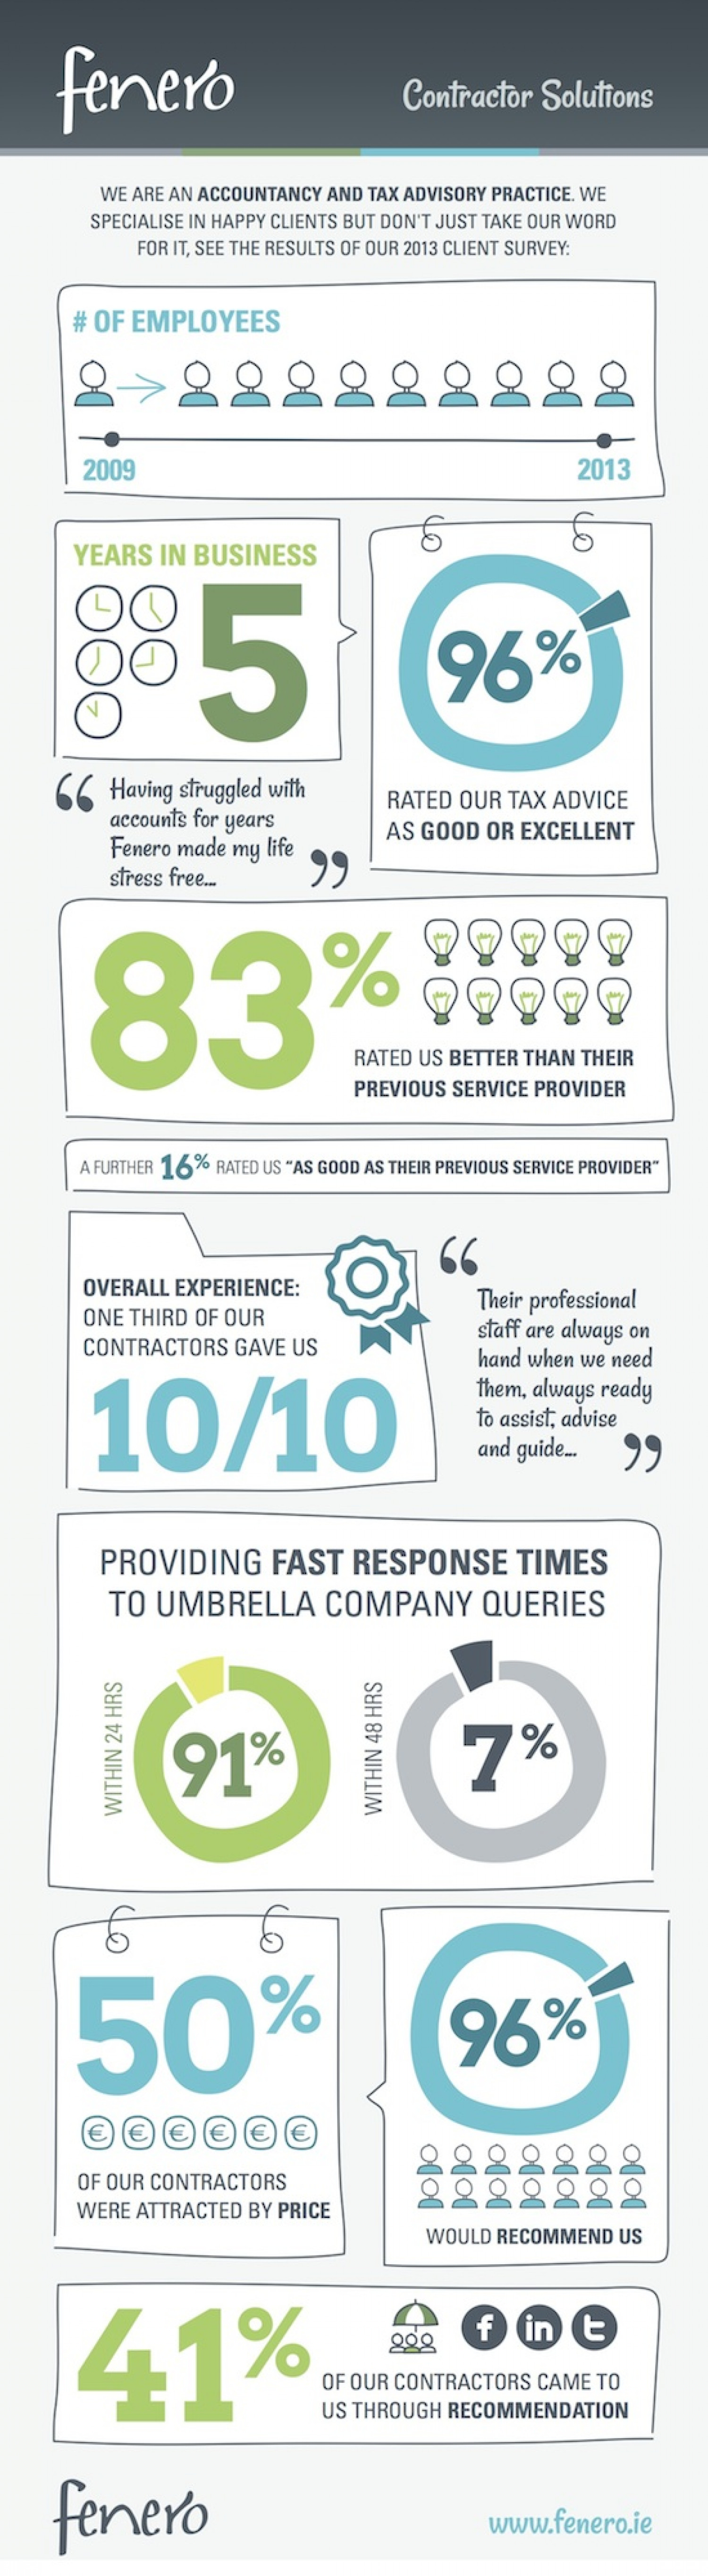 Fenero 2013 Client Survey Infographic